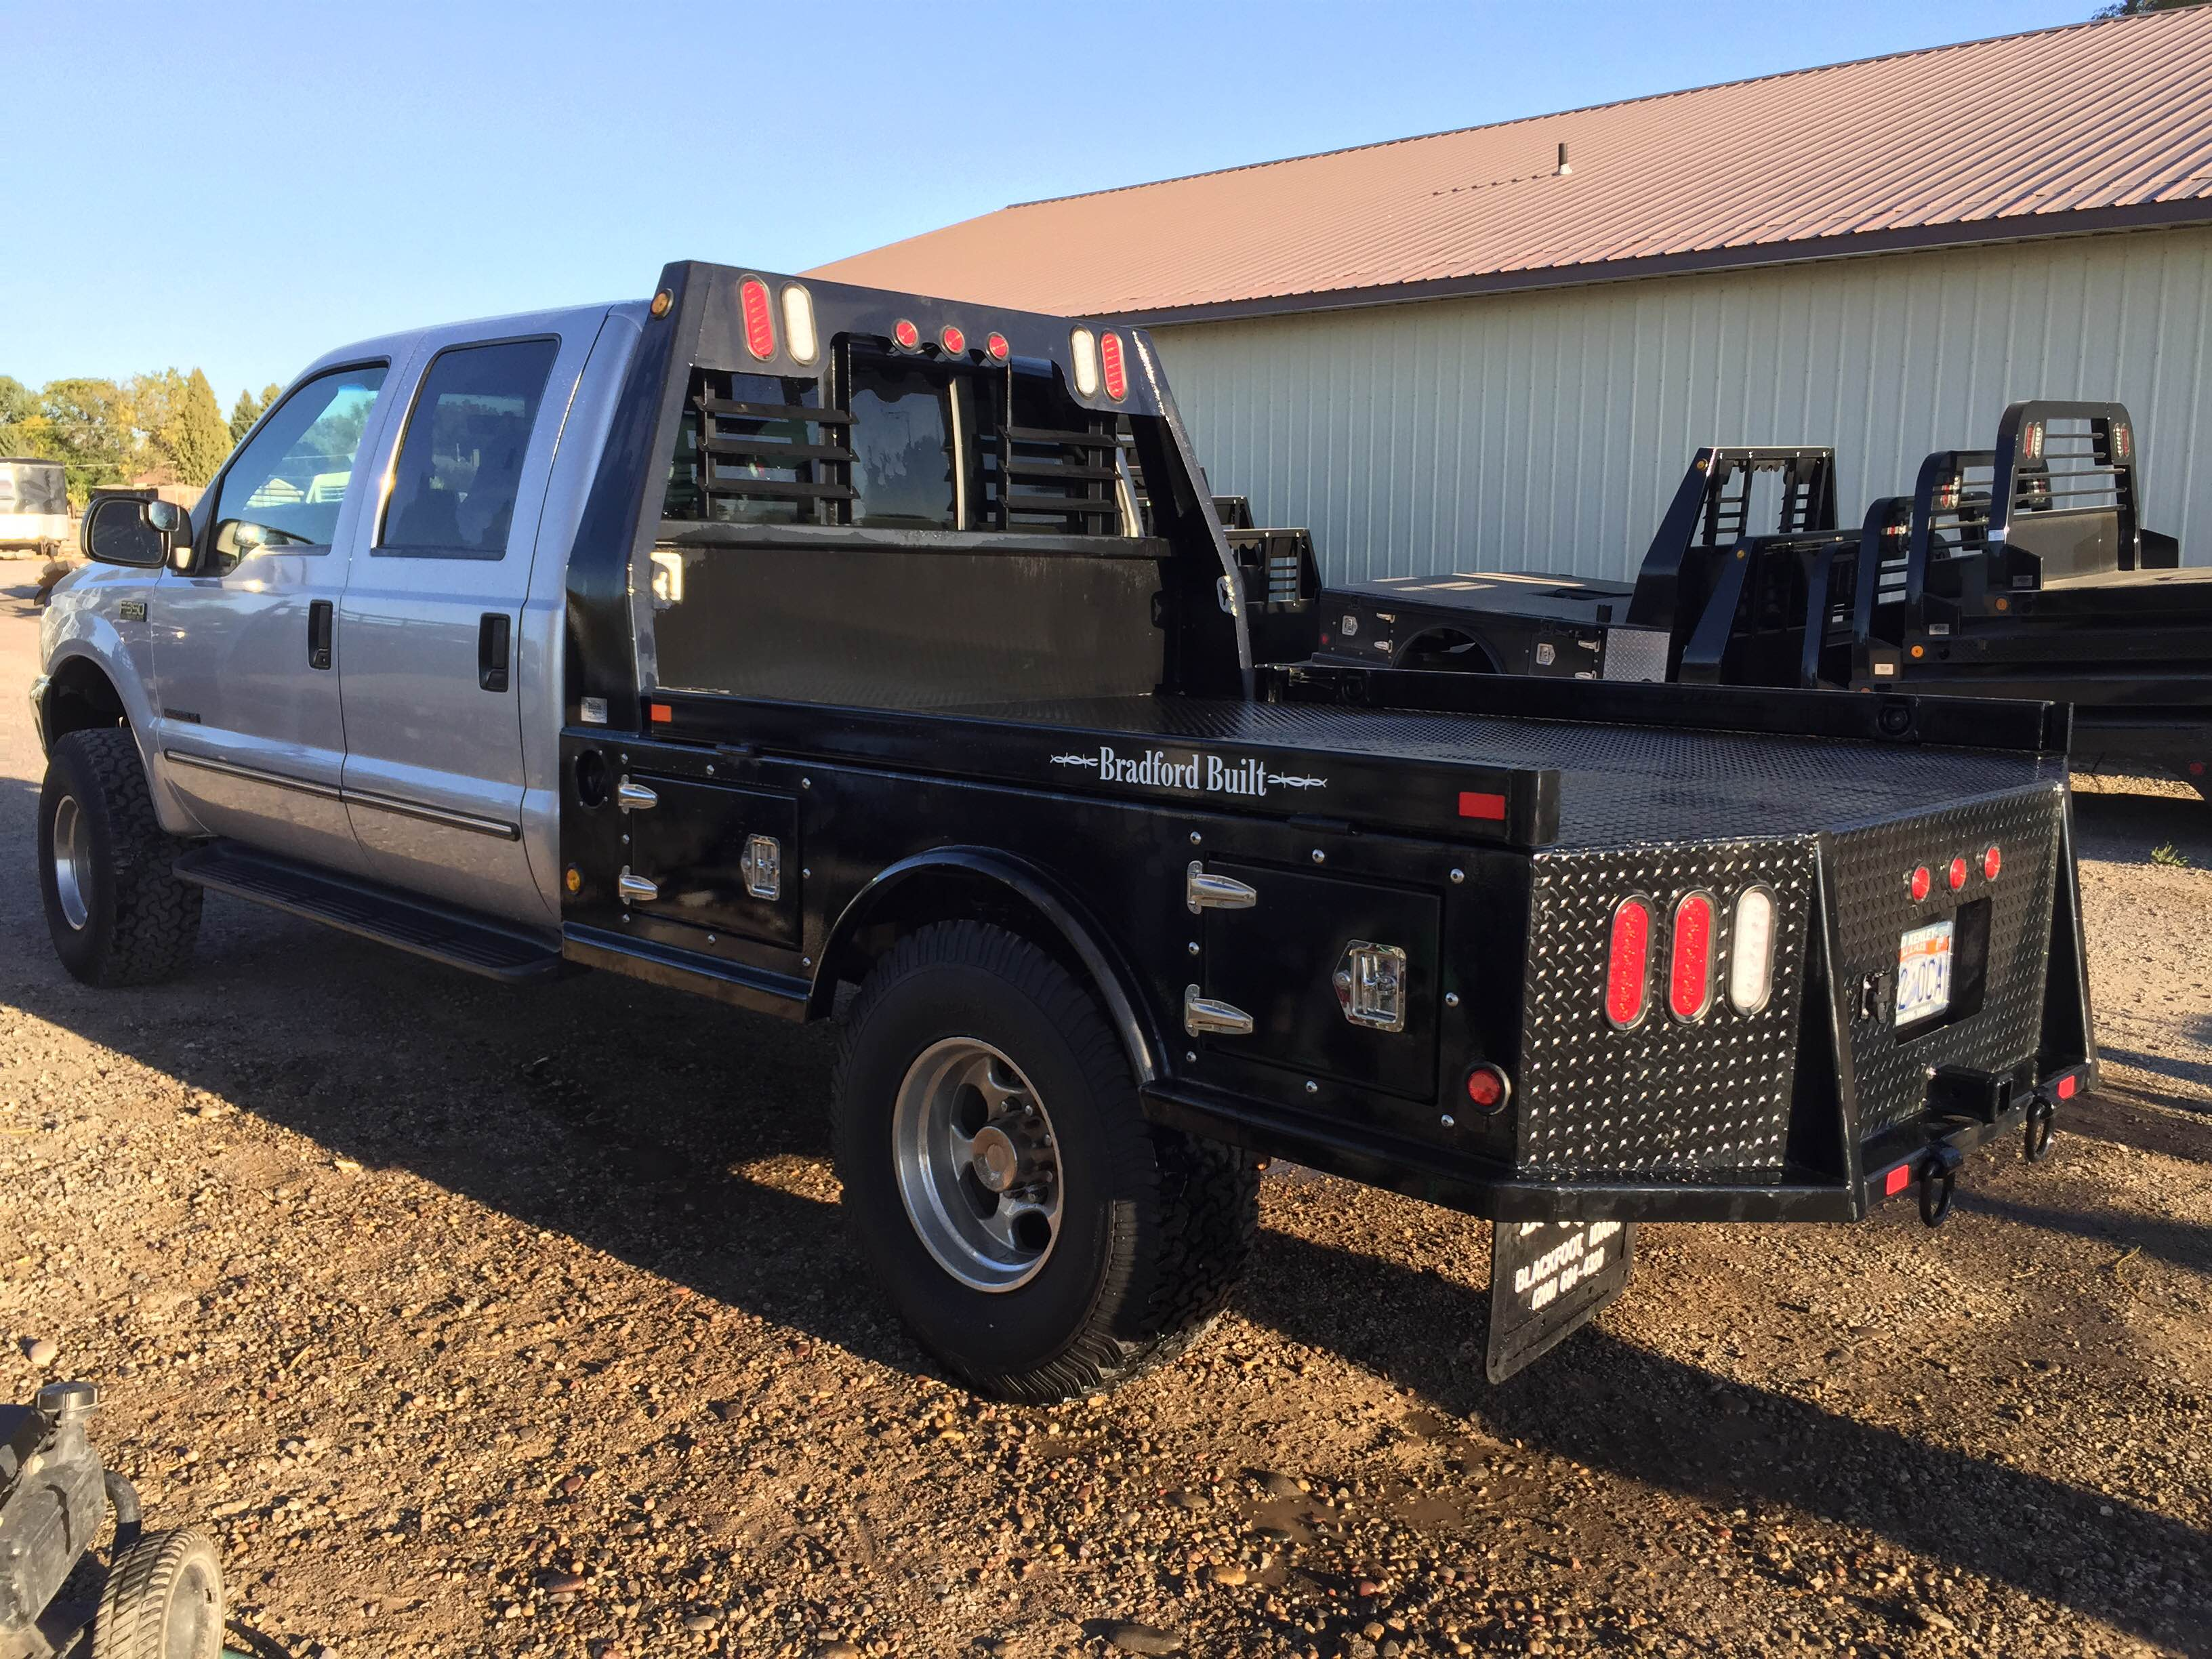 Bradford Built Flatbed 4 Box Steel Used Gooseneck Trailers Wiring Harness On Boxes Capacity Recessed Ball Receiver Type Bumper Hitch With D Rings Headache Rack Lights Mud Flaps Lighted License Plate Mount